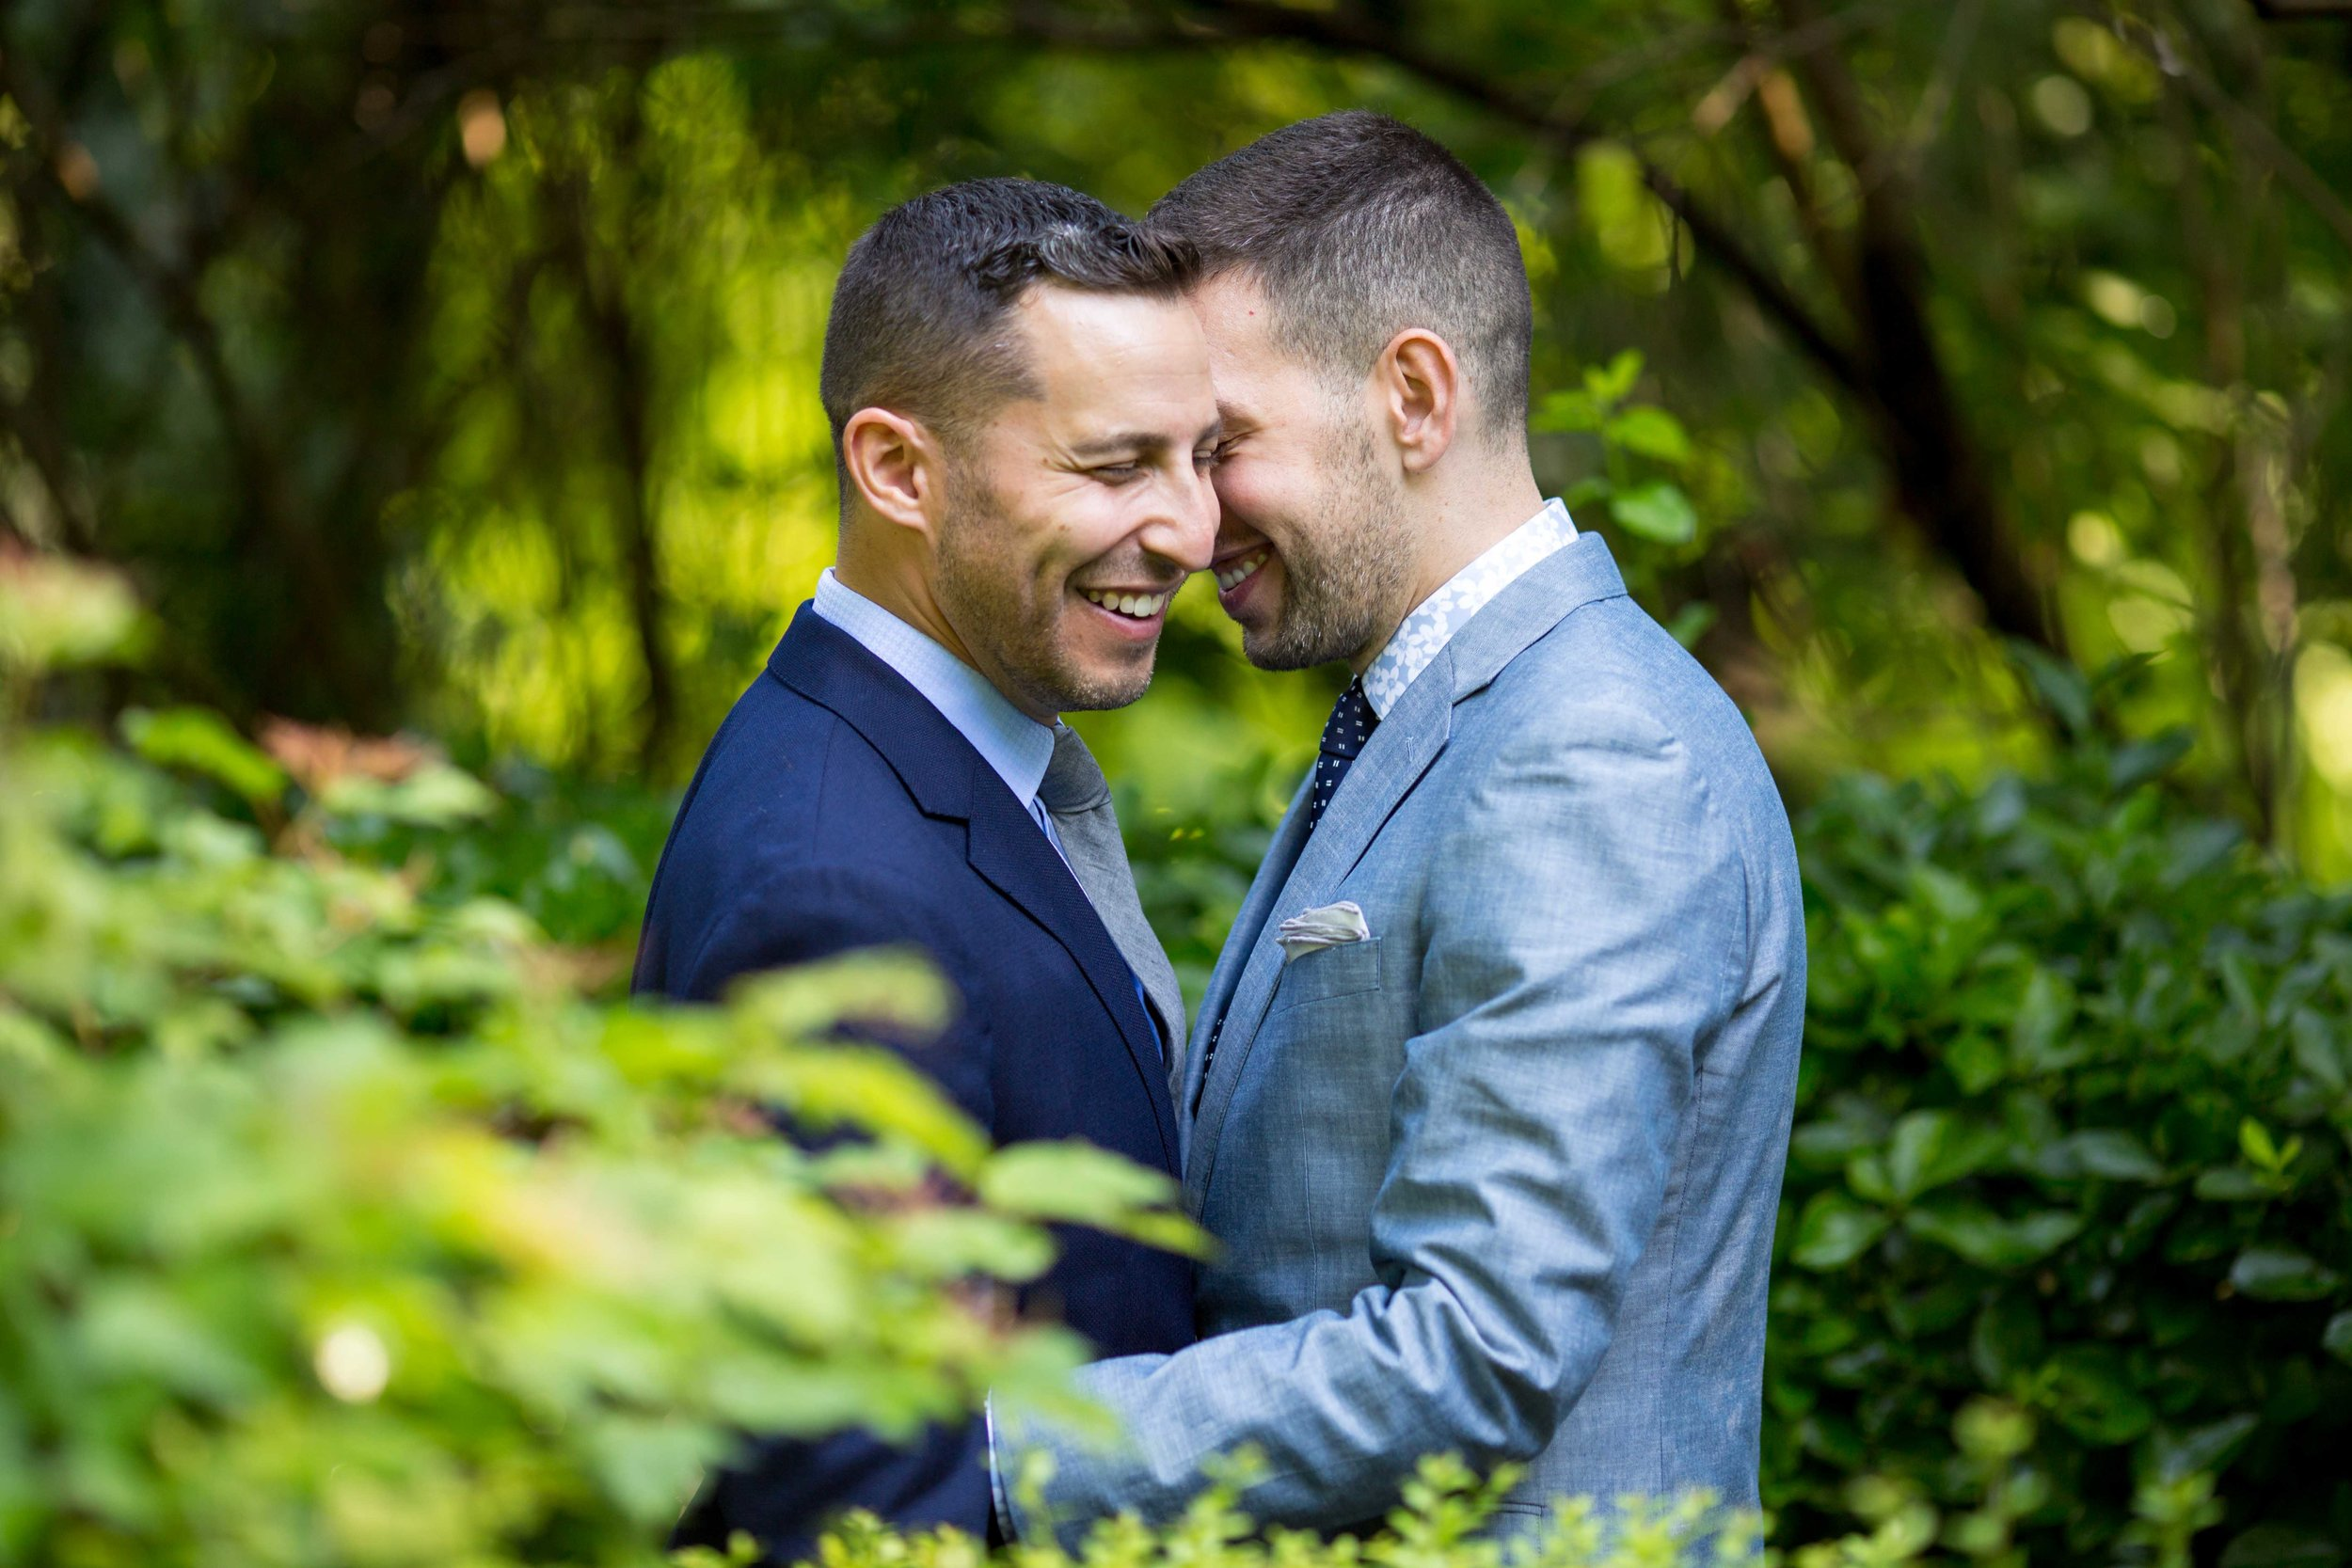 NYC Wedding Photographer Fort Tryon Park Engagement Photo Shoot Session Gay Same Sex Marriage New York-5.jpg